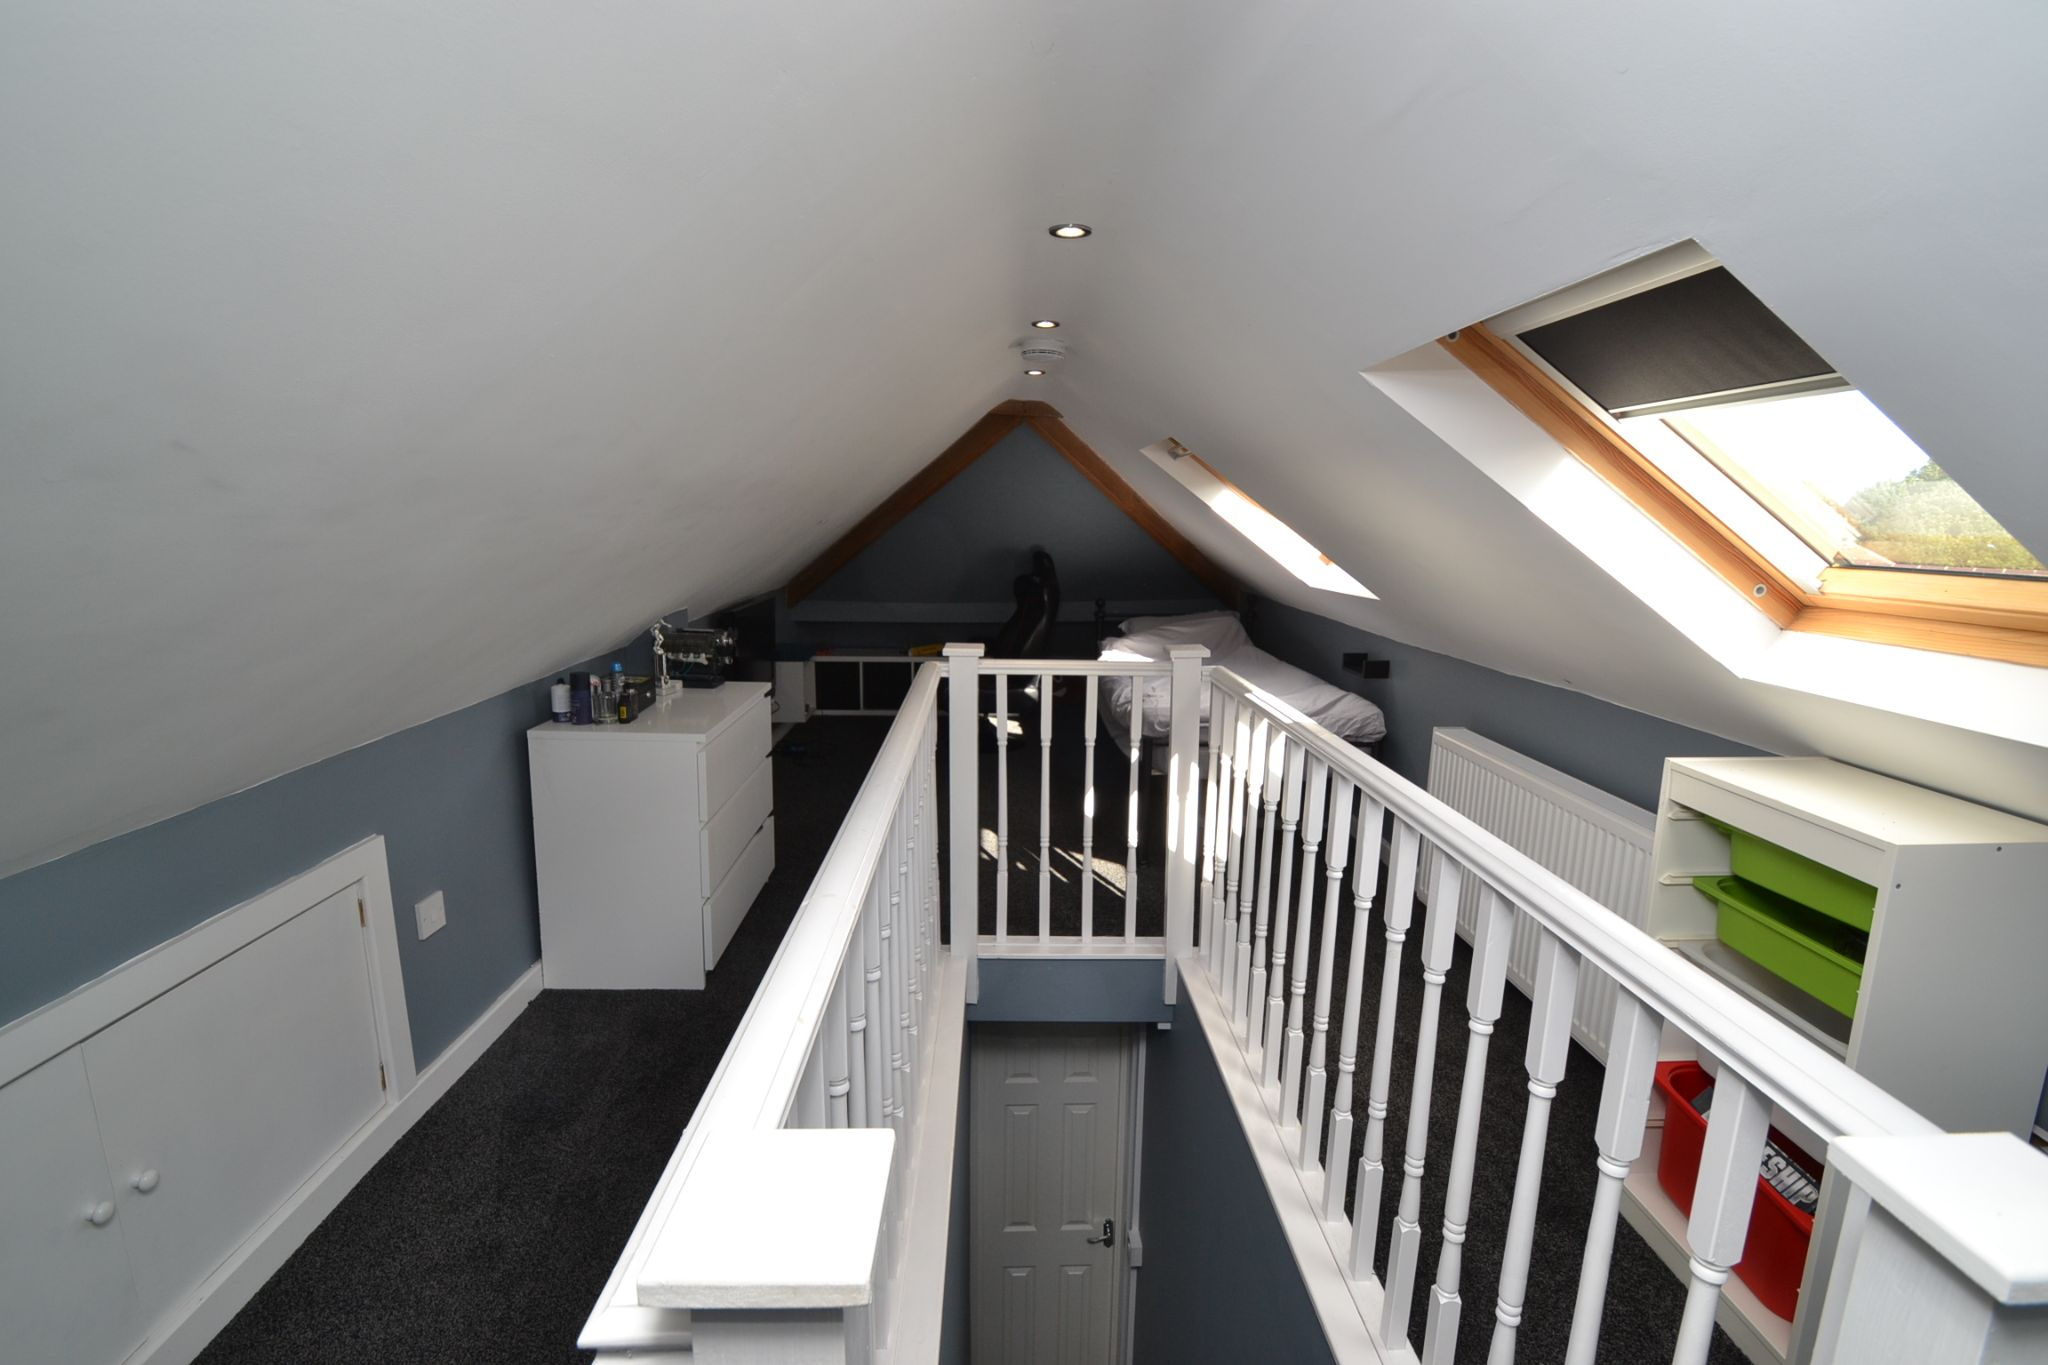 5 Bedroom Semi-detached House For Sale - Photograph 22